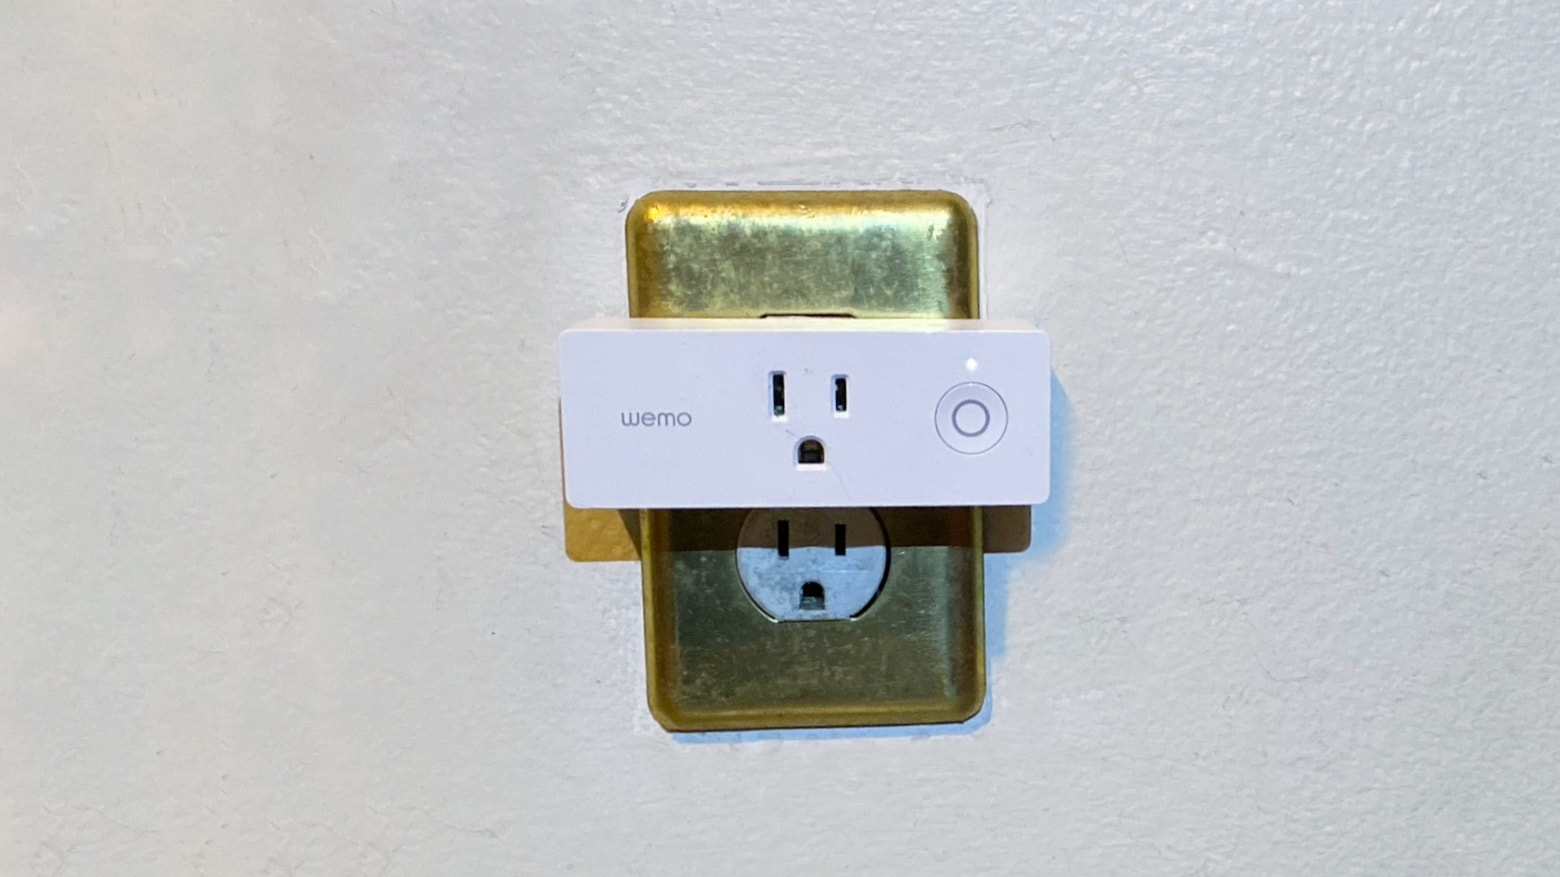 Wemo WiFi Smart Plug is a nice start to home automation